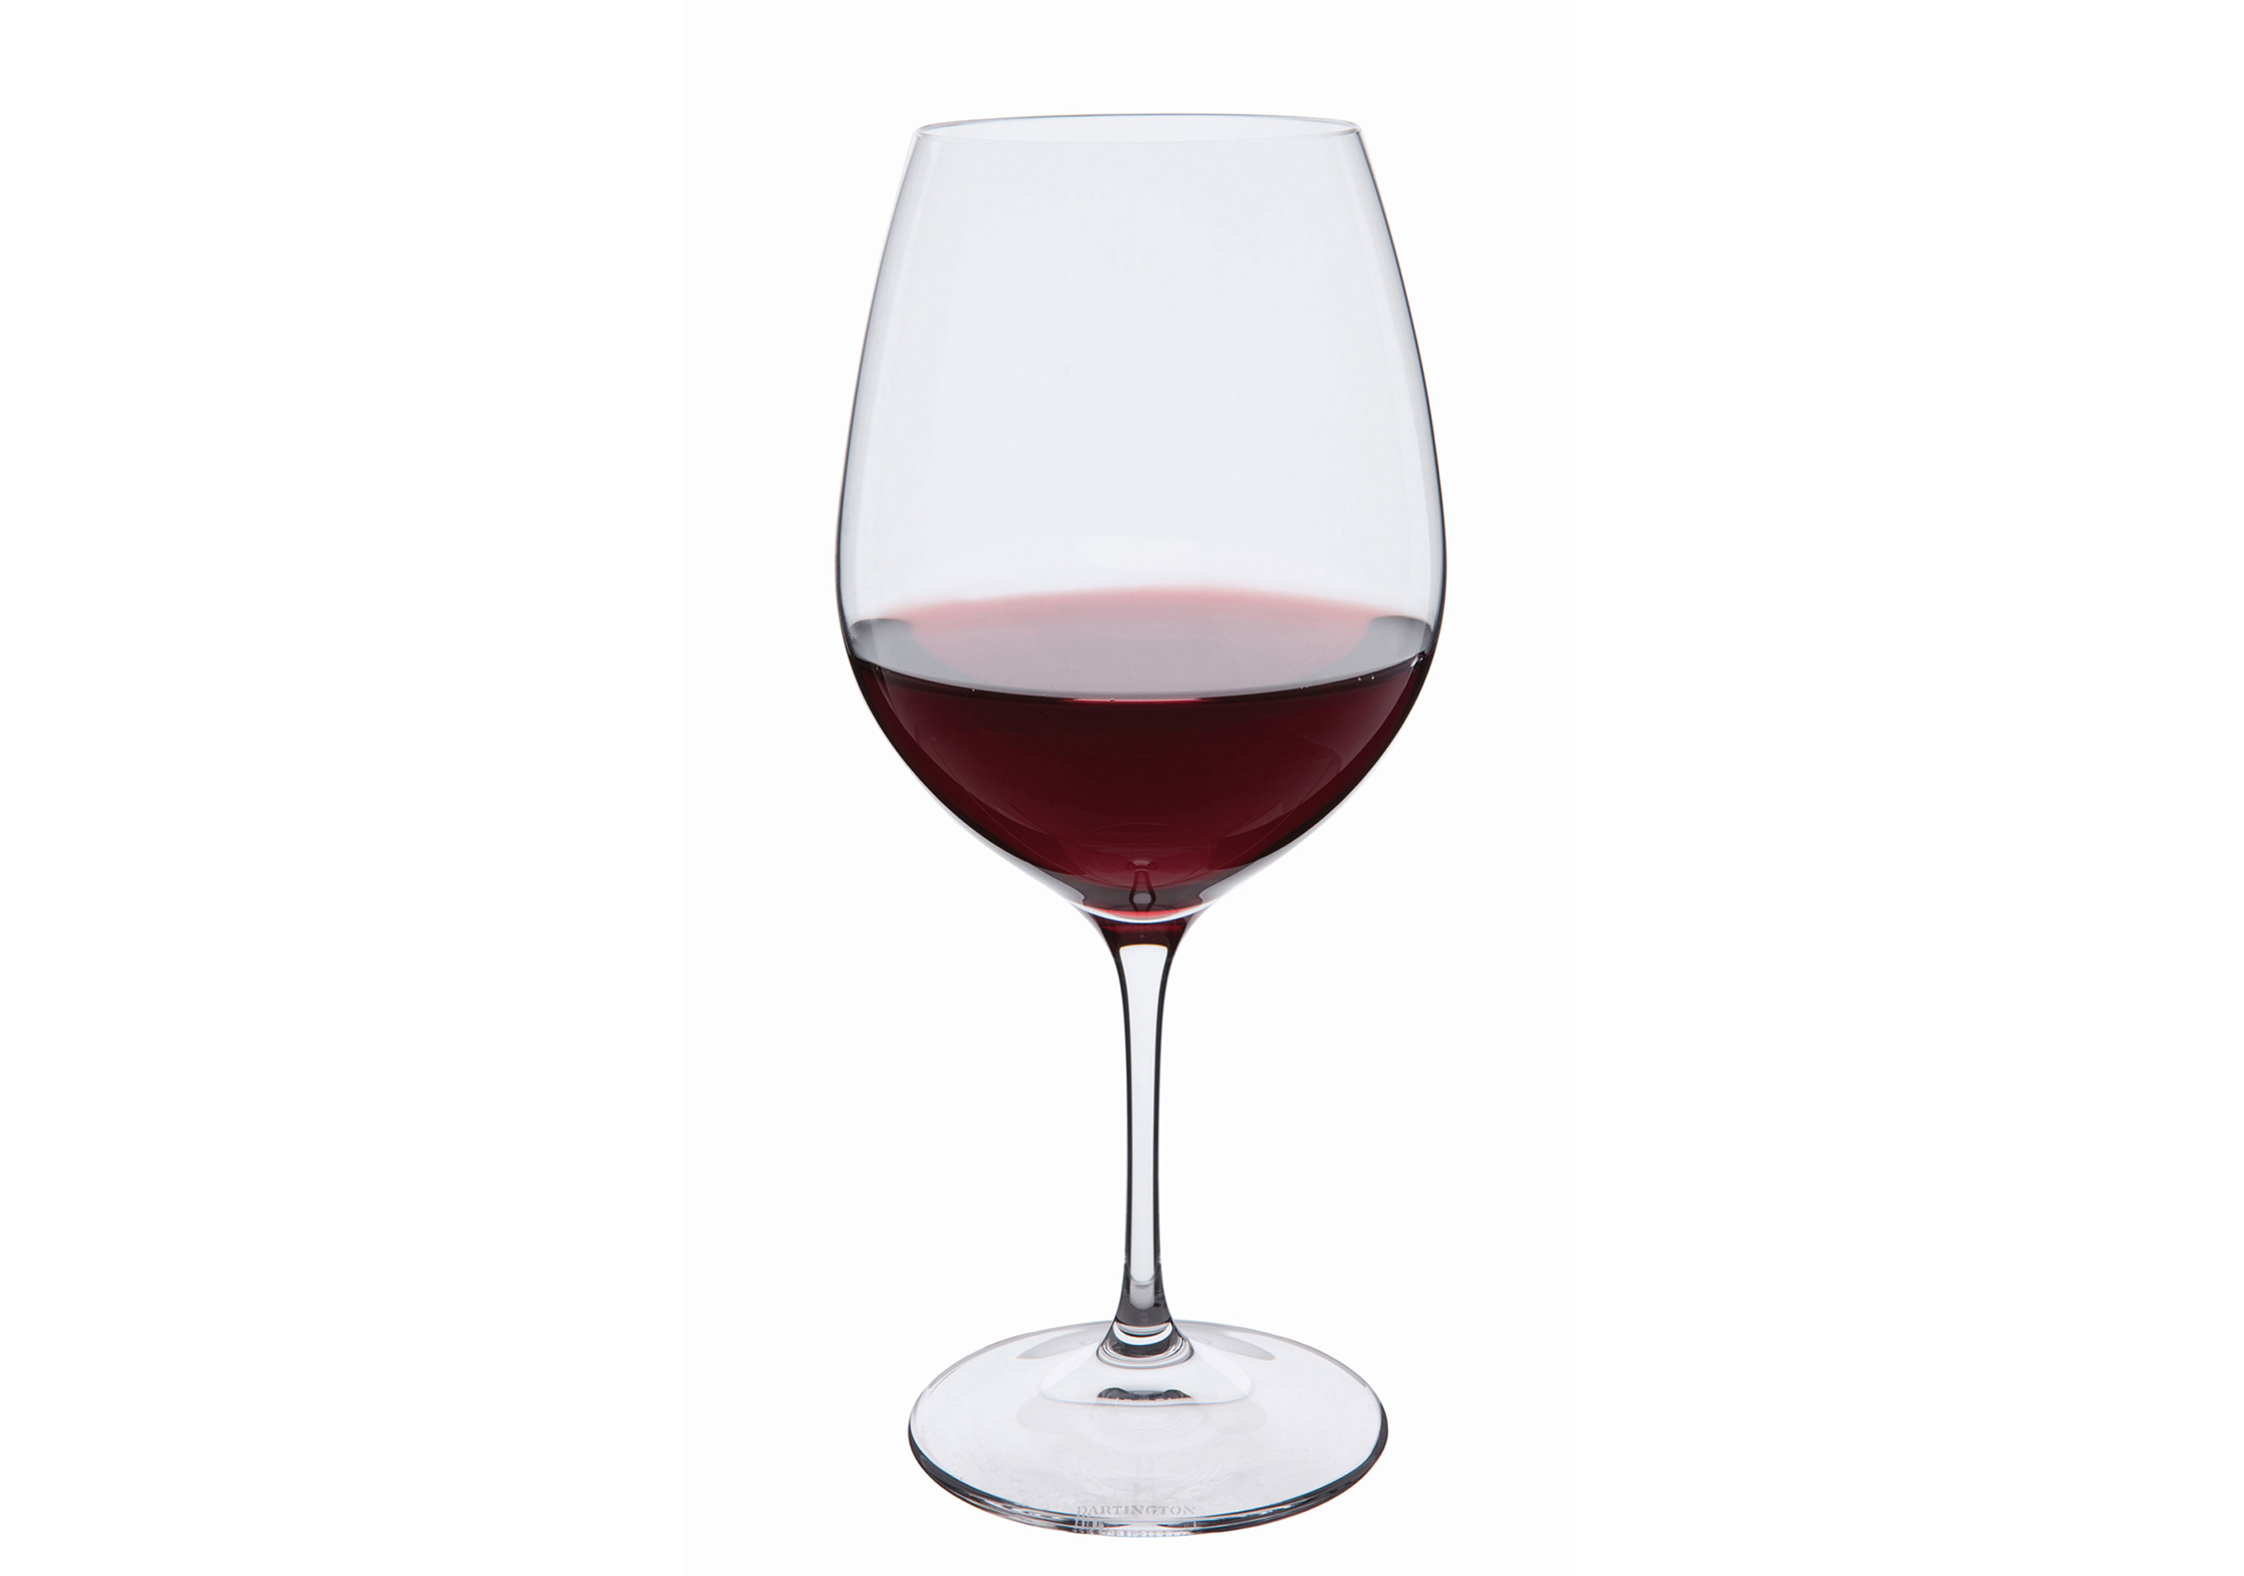 Medium sized red wine glass